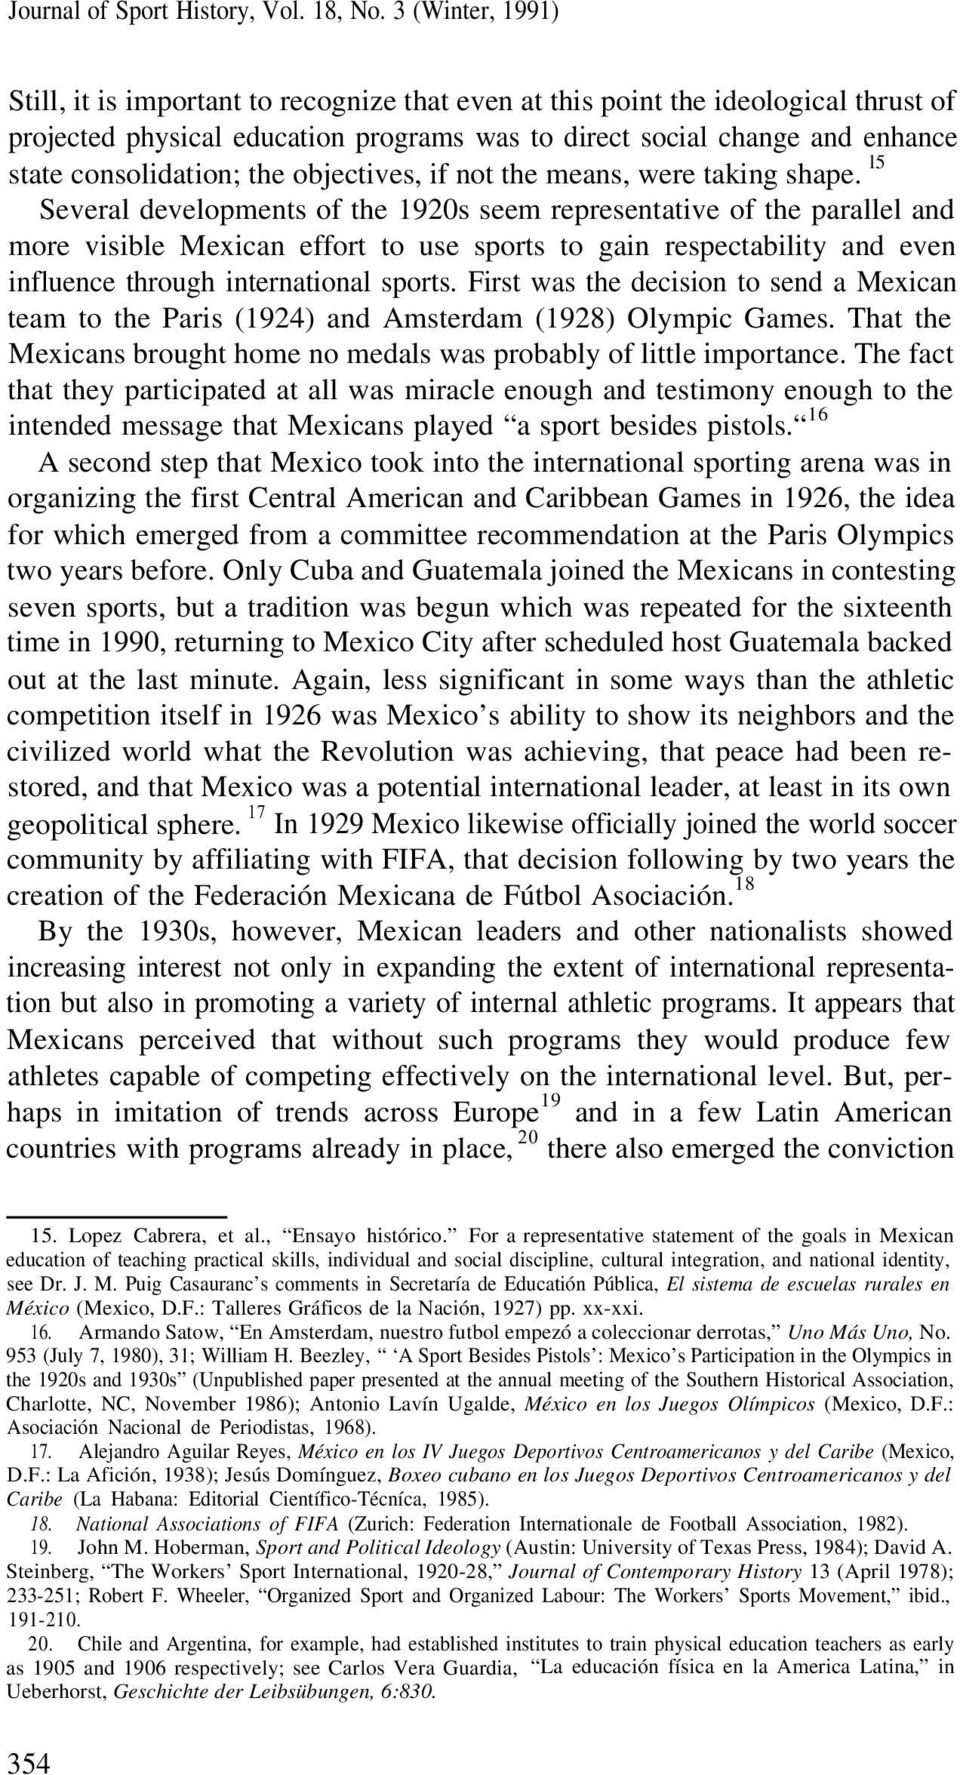 l5 Several developments of the 1920s seem representative of the parallel and more visible Mexican effort to use sports to gain respectability and even influence through international sports.